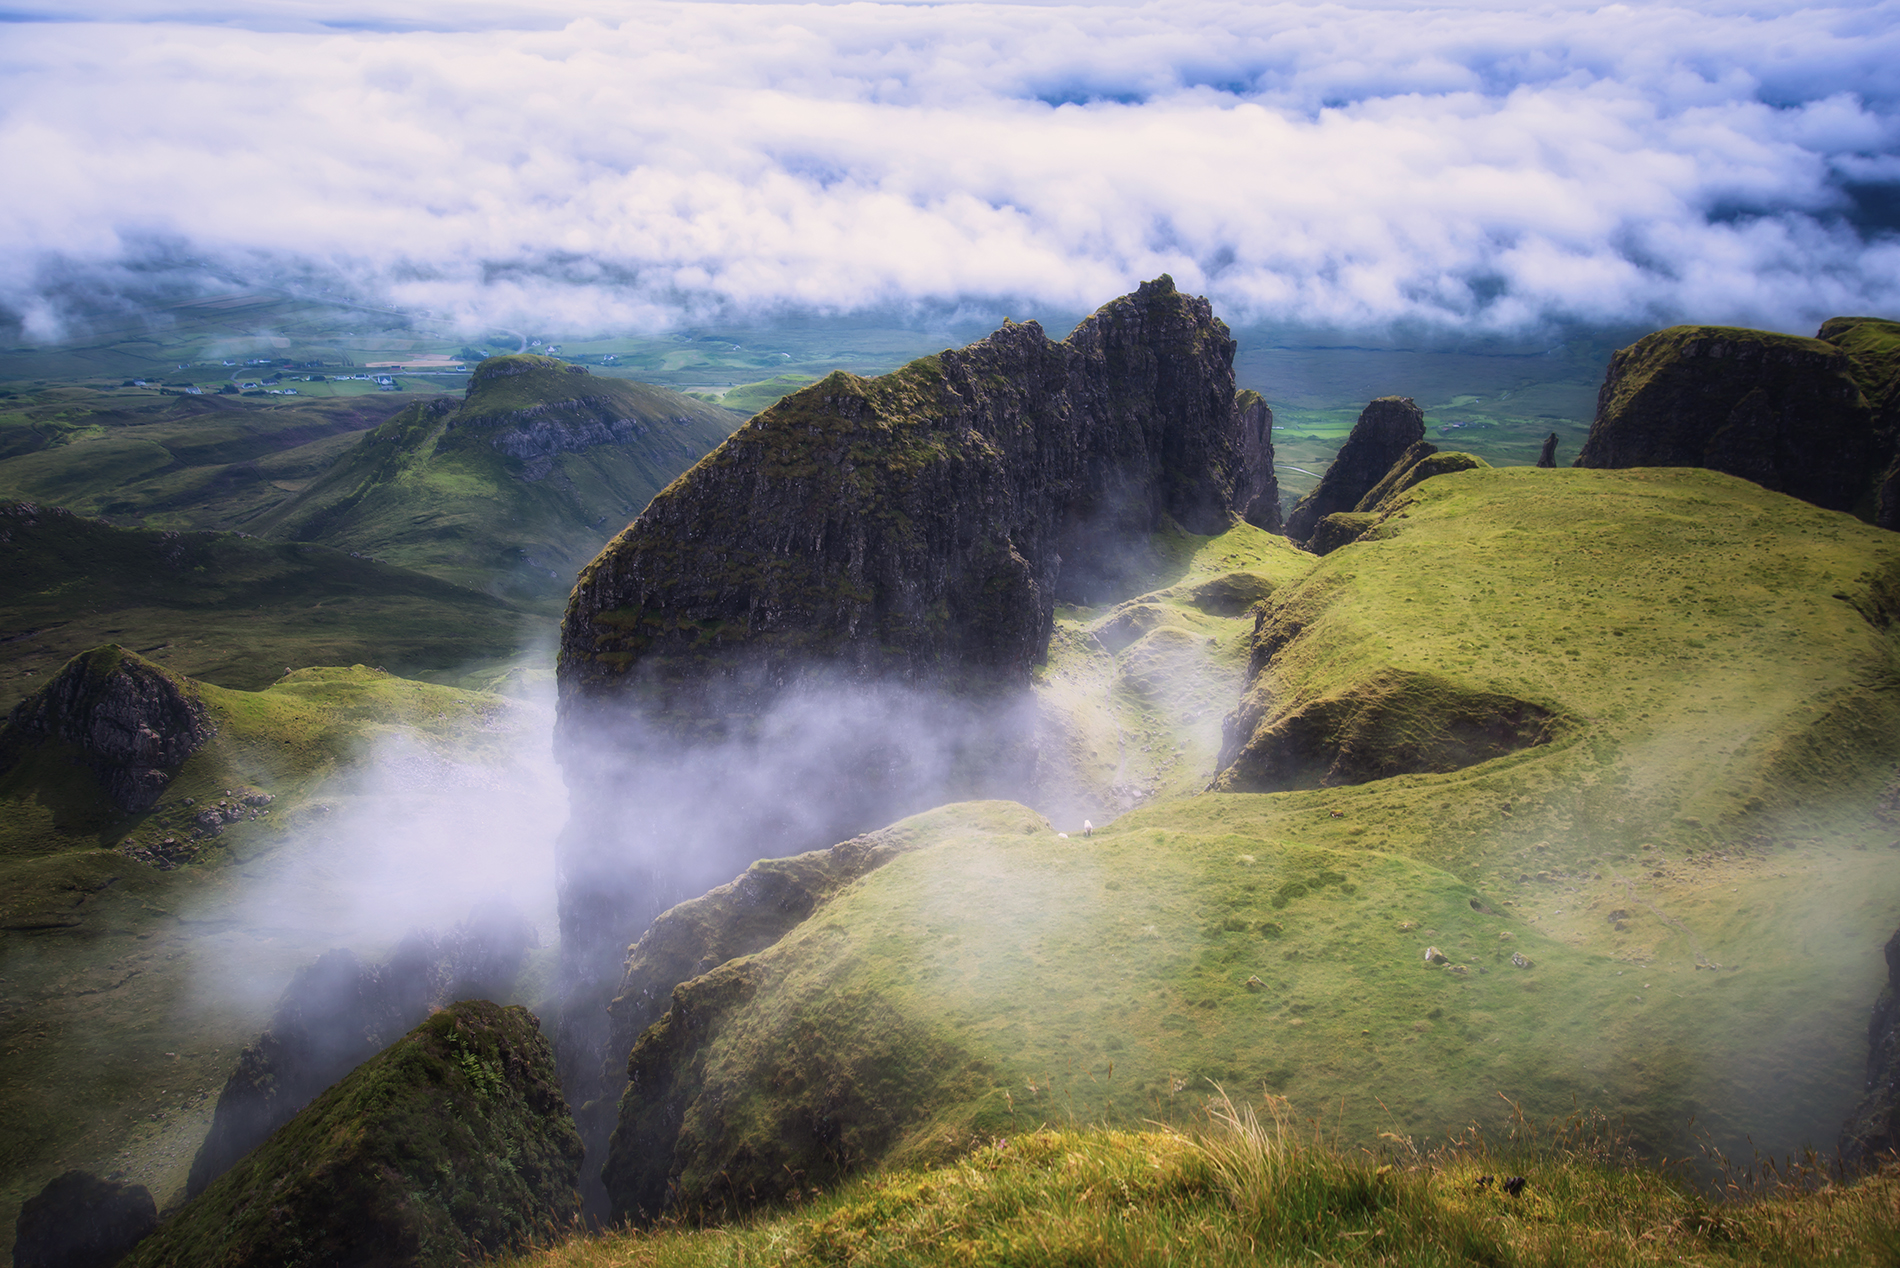 Mists on the Table of Quiraing